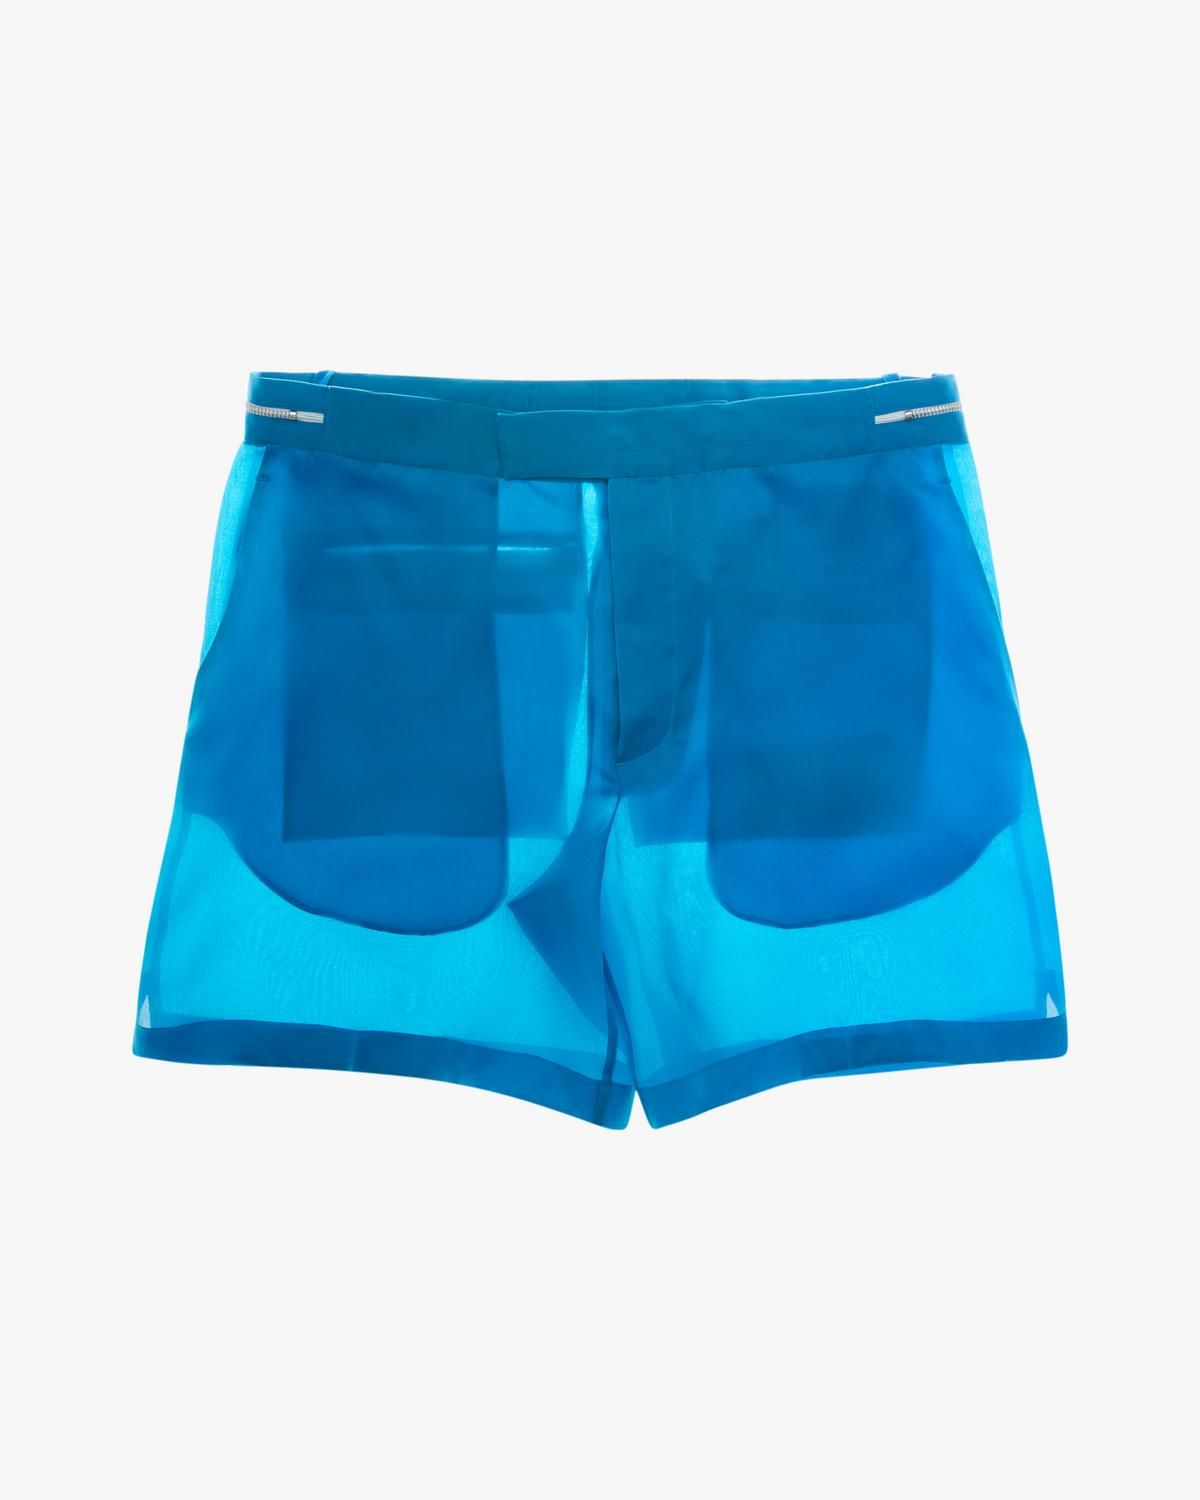 Satin Organza Shorts